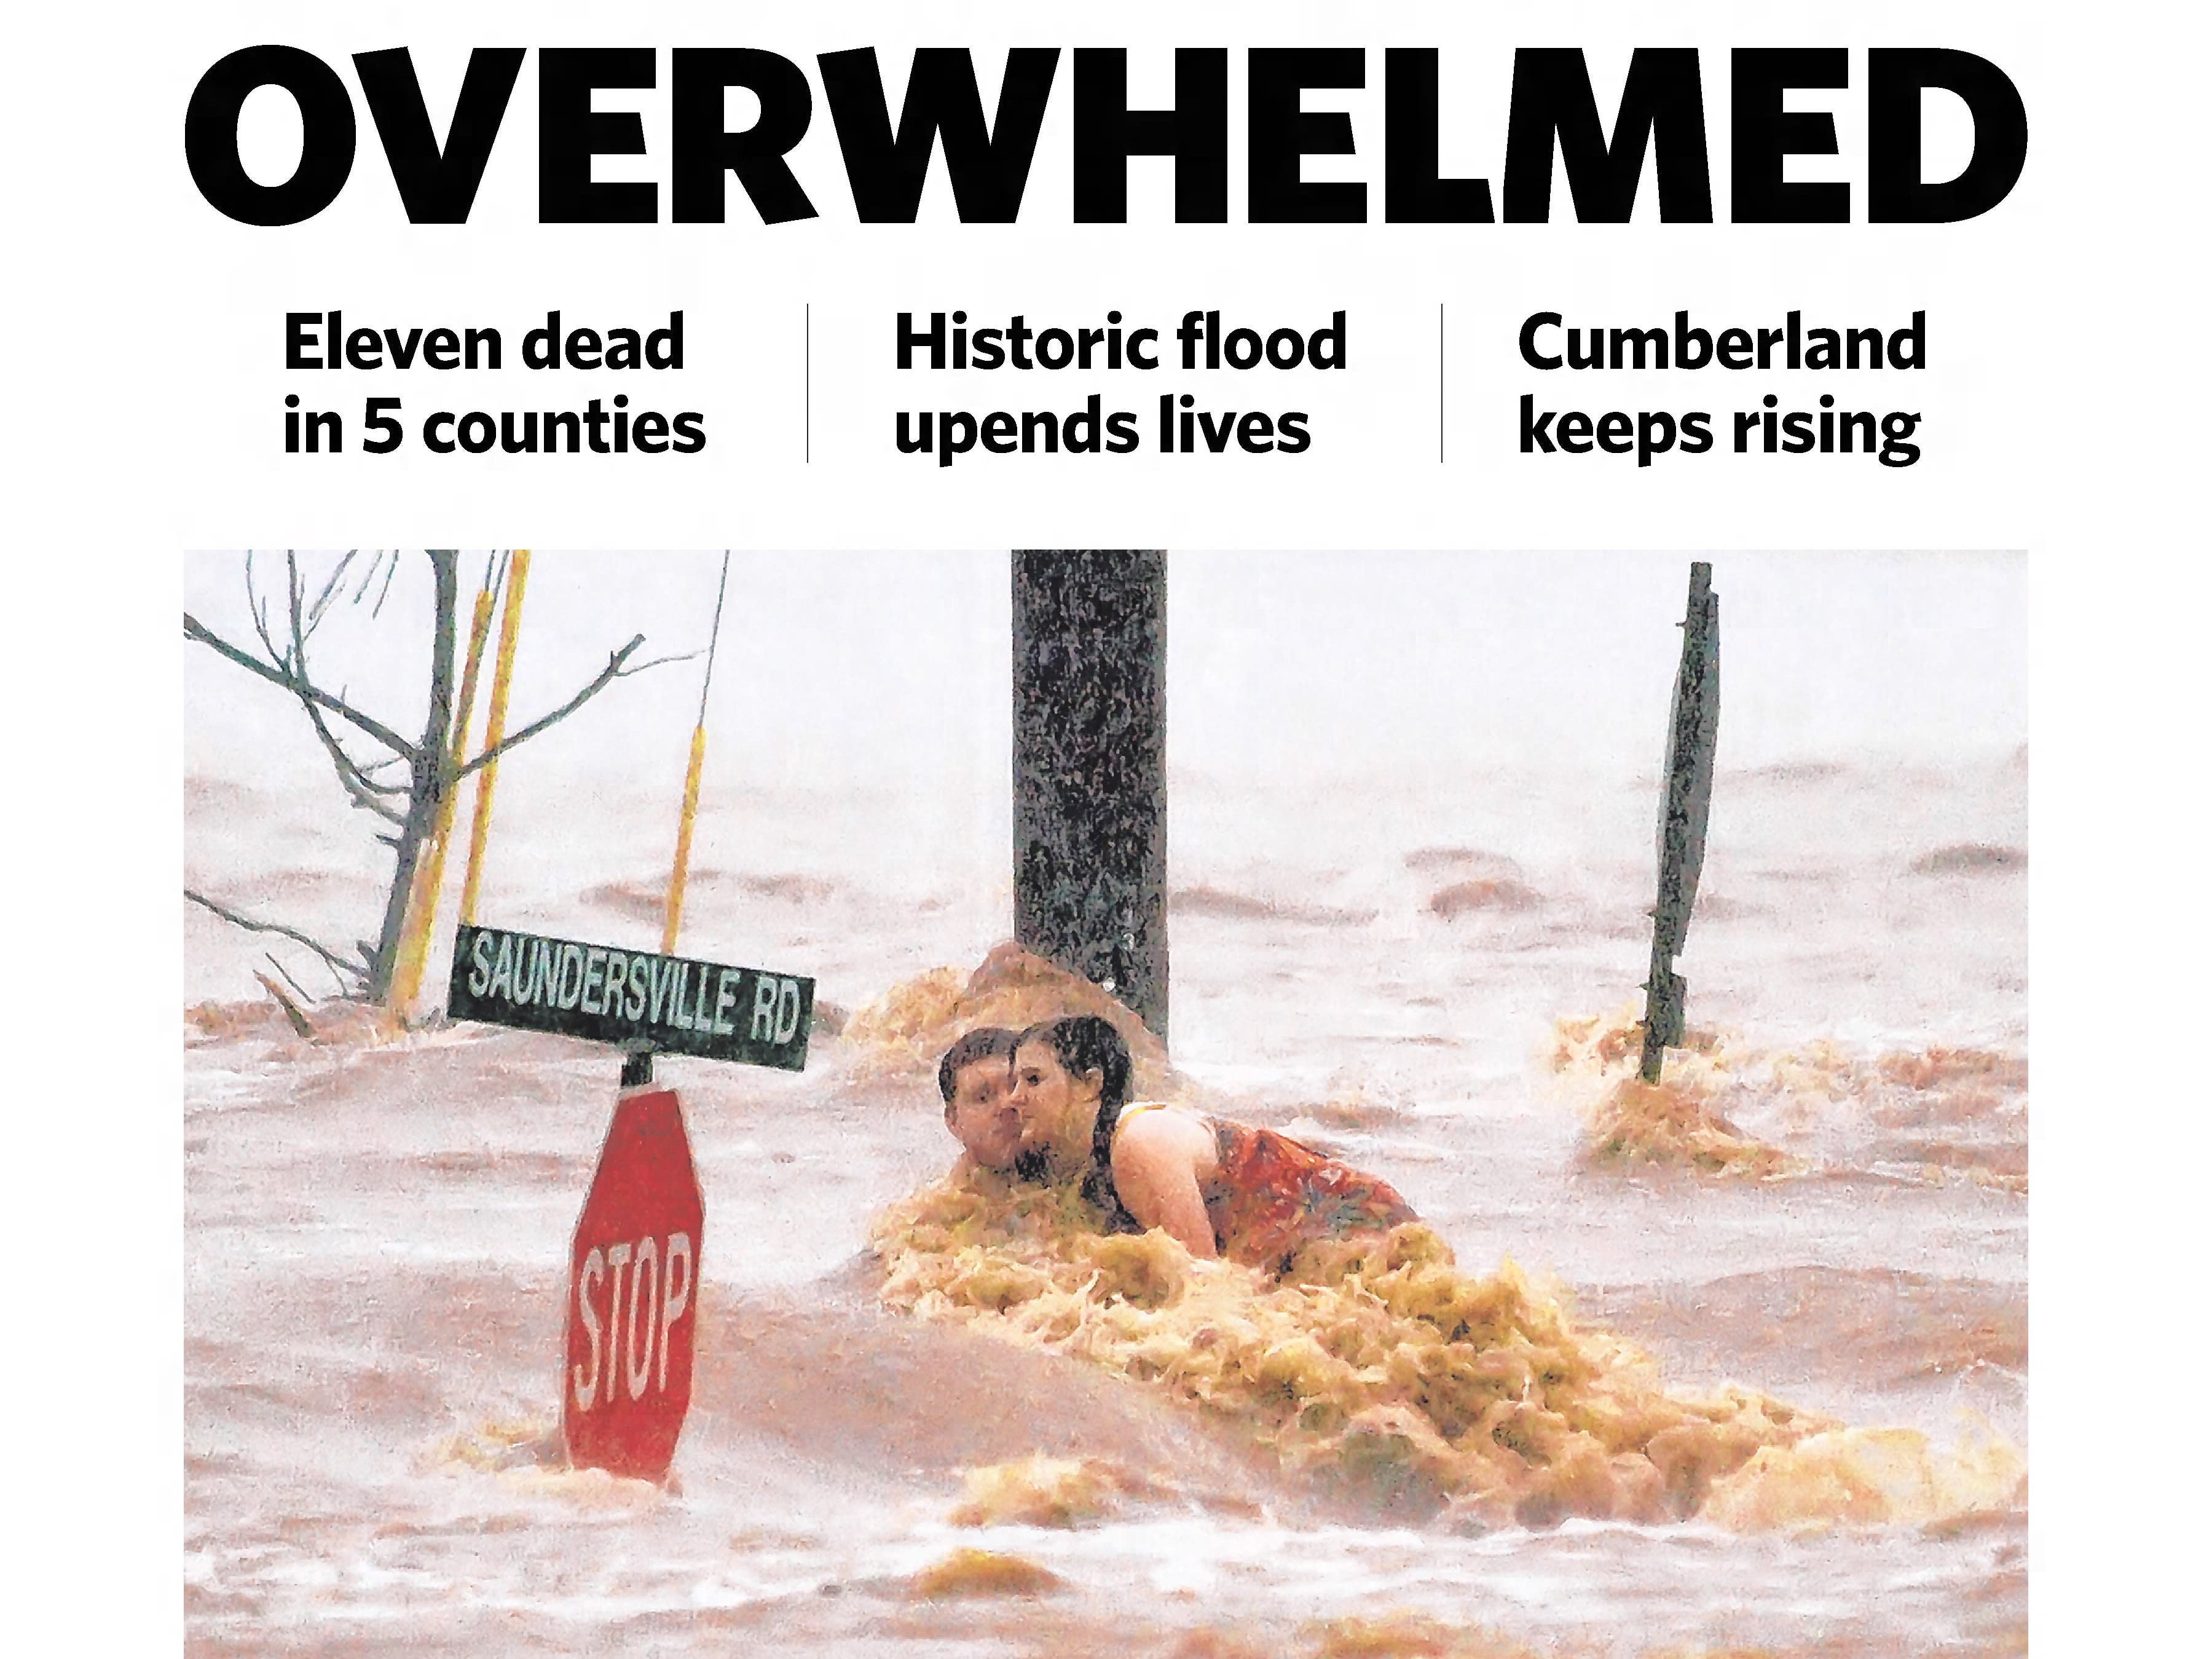 The front page of the May 3, 2010 of The Tennessean for the coverage of the Nashville flood.